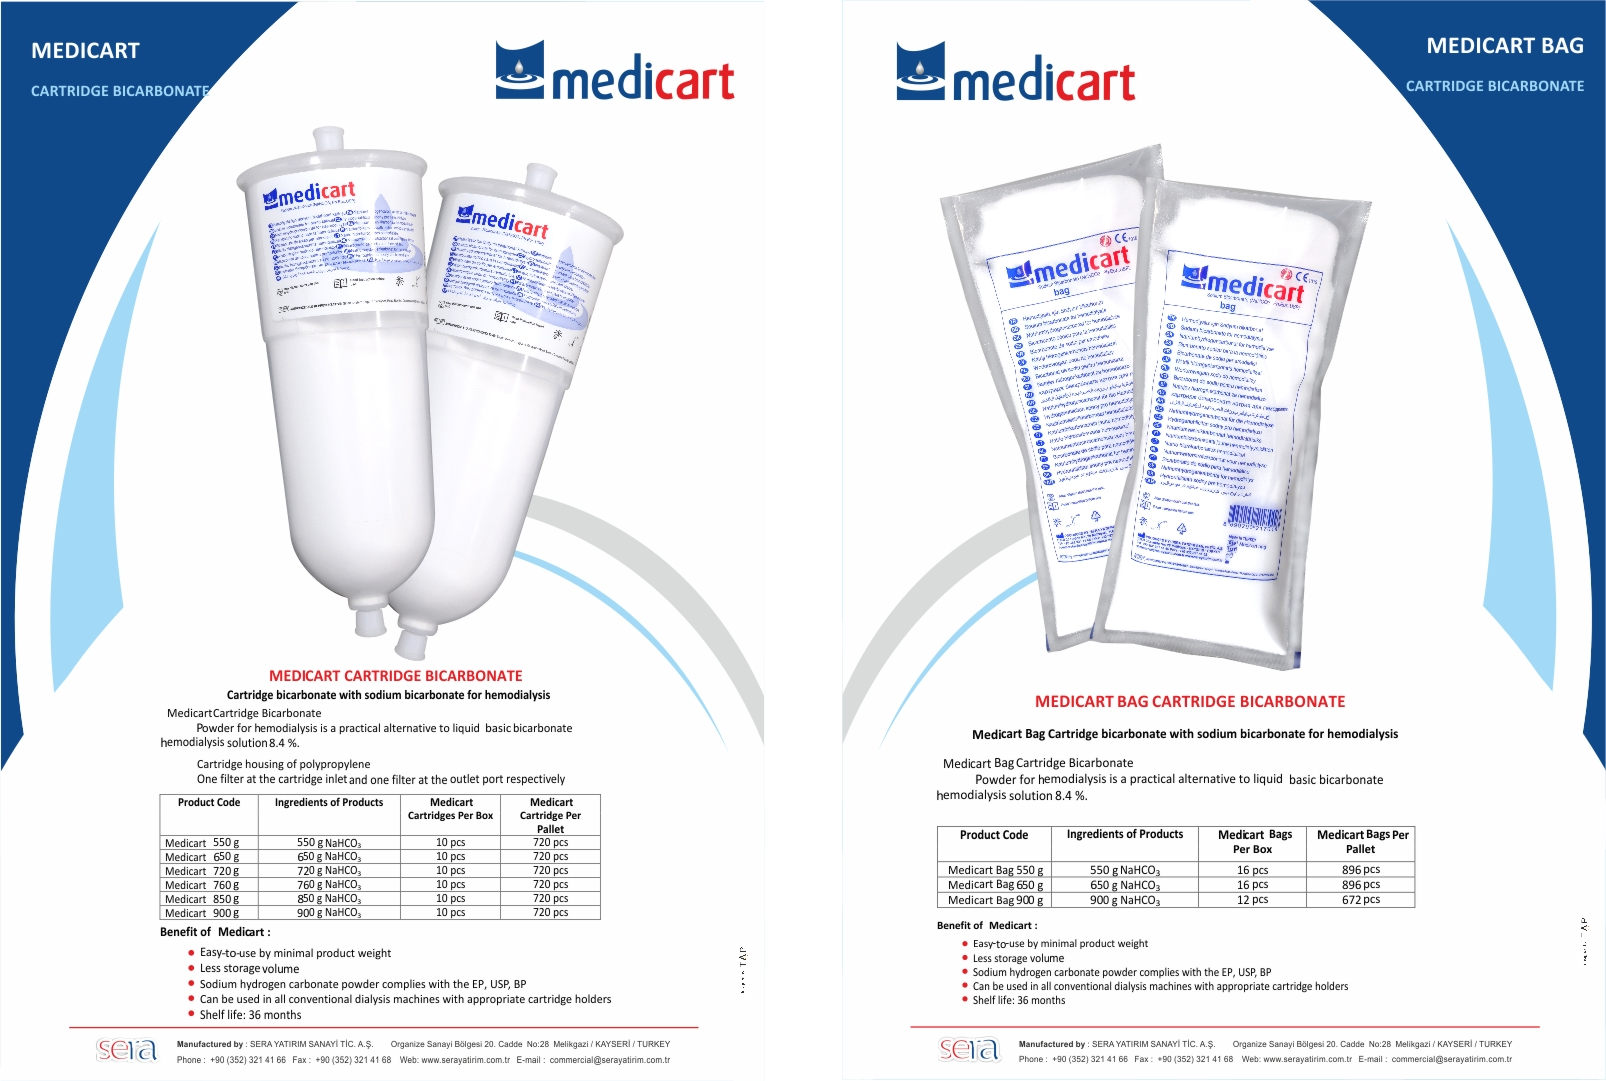 Medicart Bag Cartridge Bicarbonate Brochure